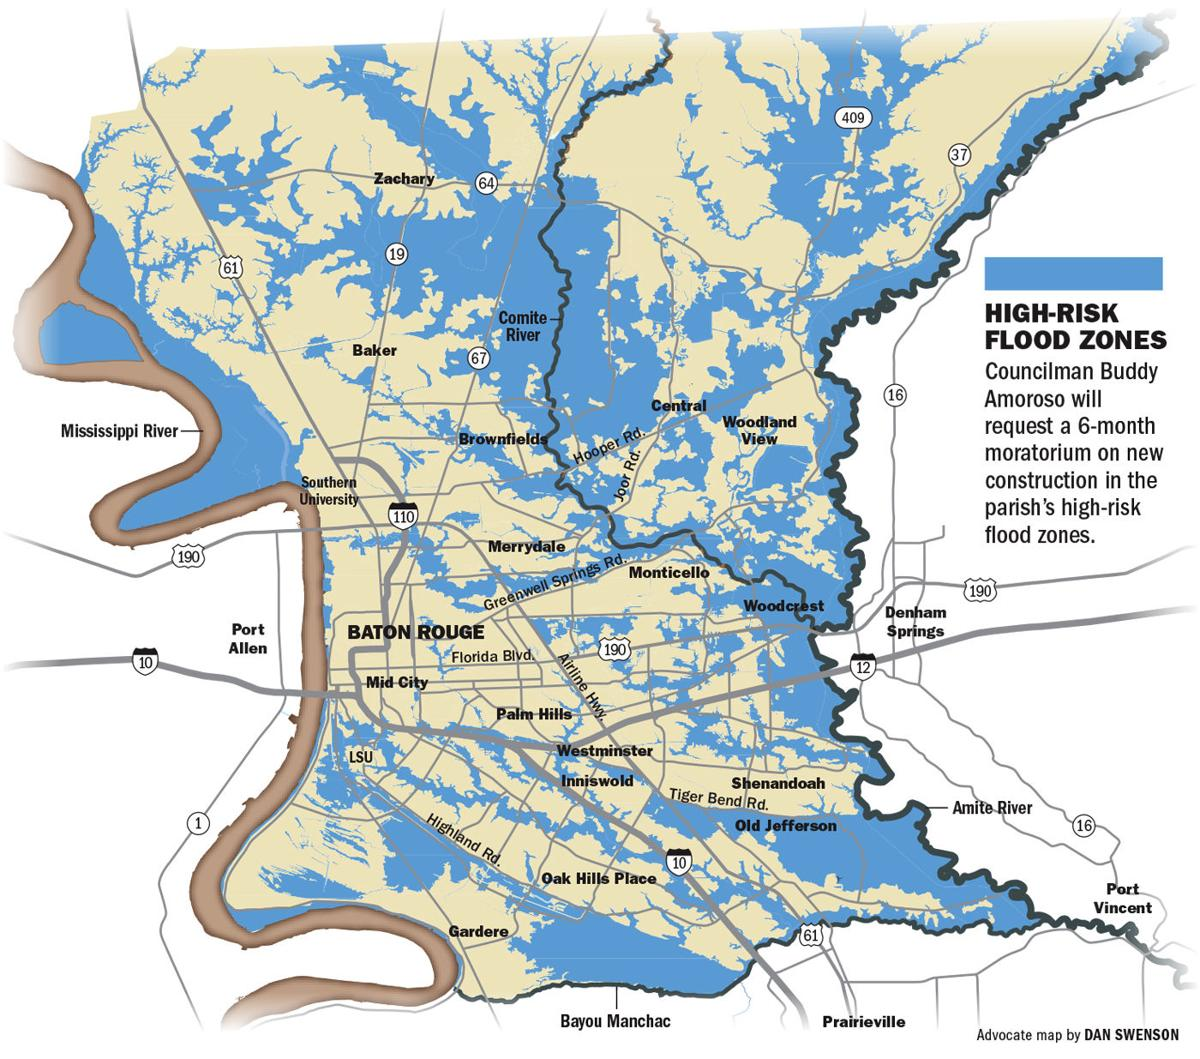 092217 Baton Rouge Flood Zones.jpg